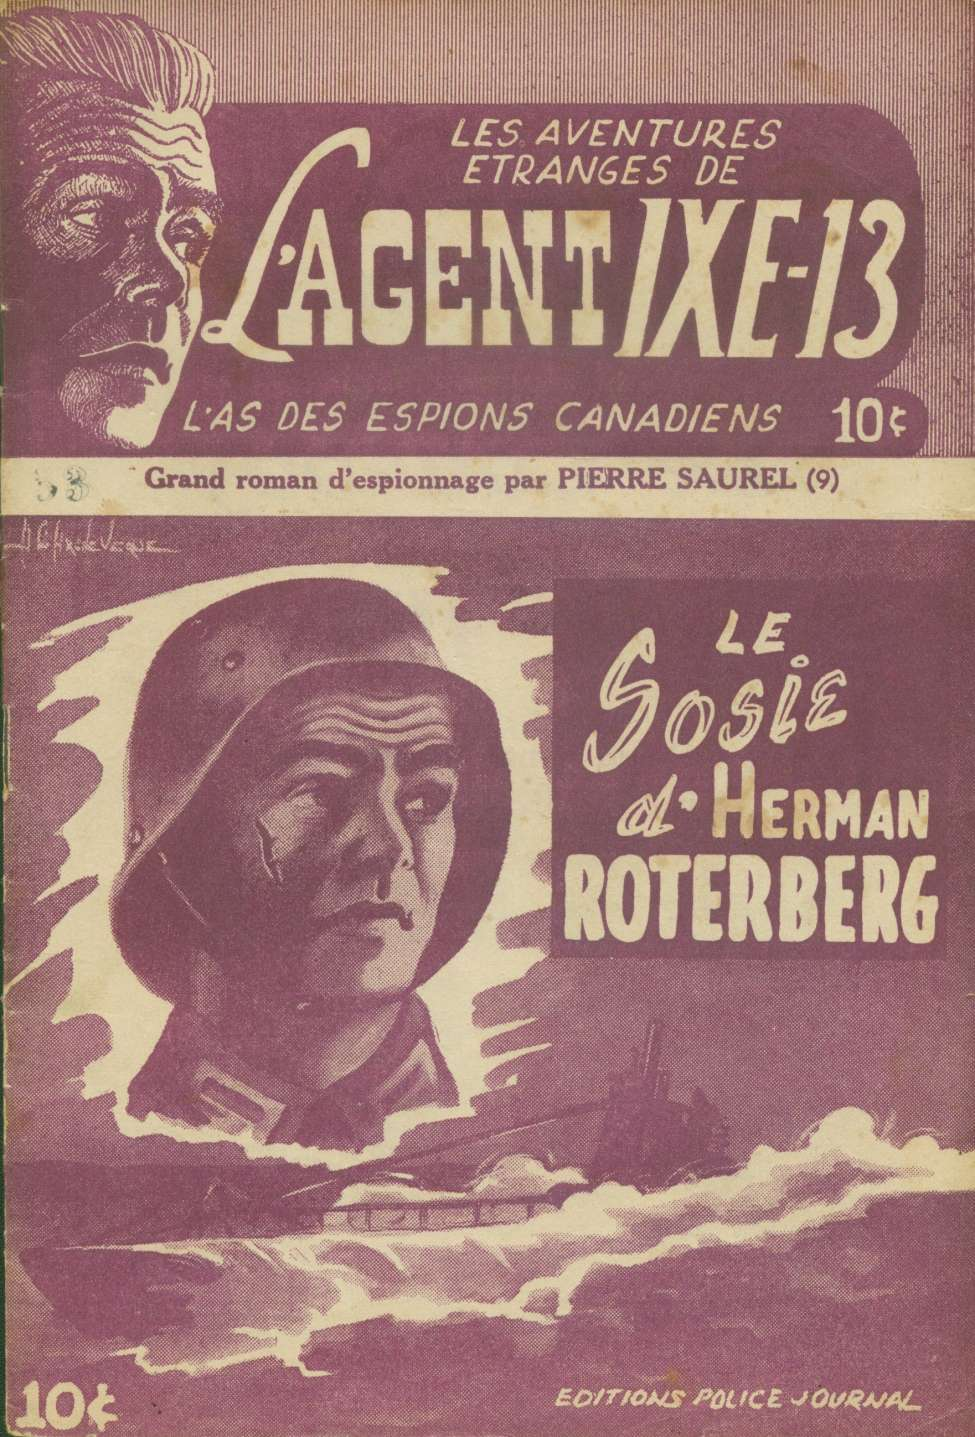 Comic Book Cover For L'Agent IXE-13 v2 009 – Le sosie d'Herman Roterberg